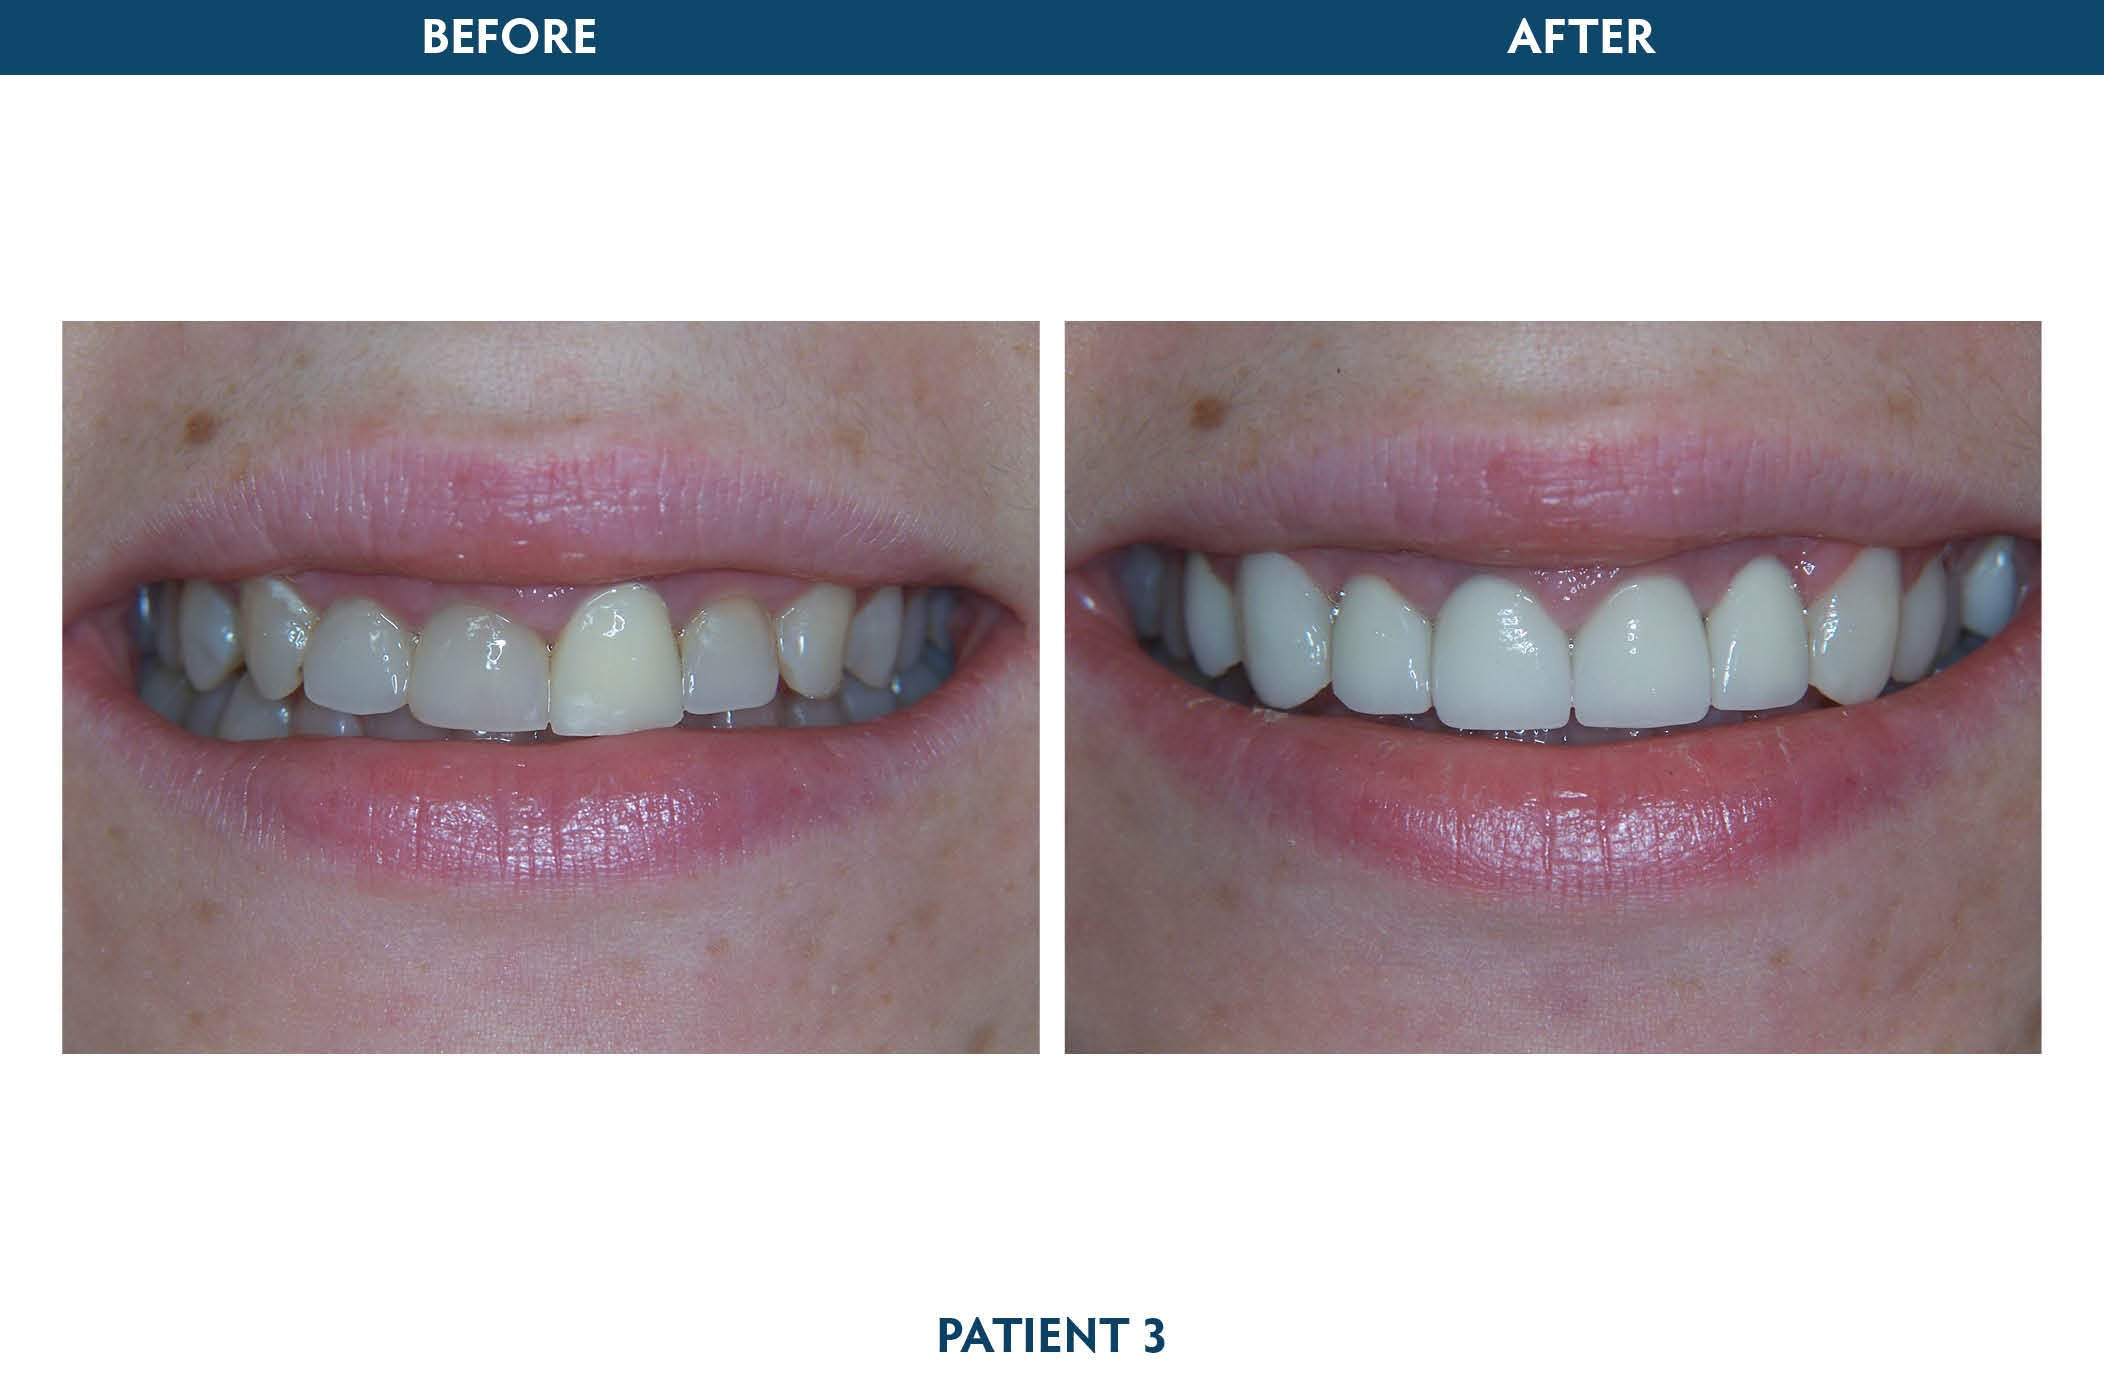 restorative dentistry white plains, ny